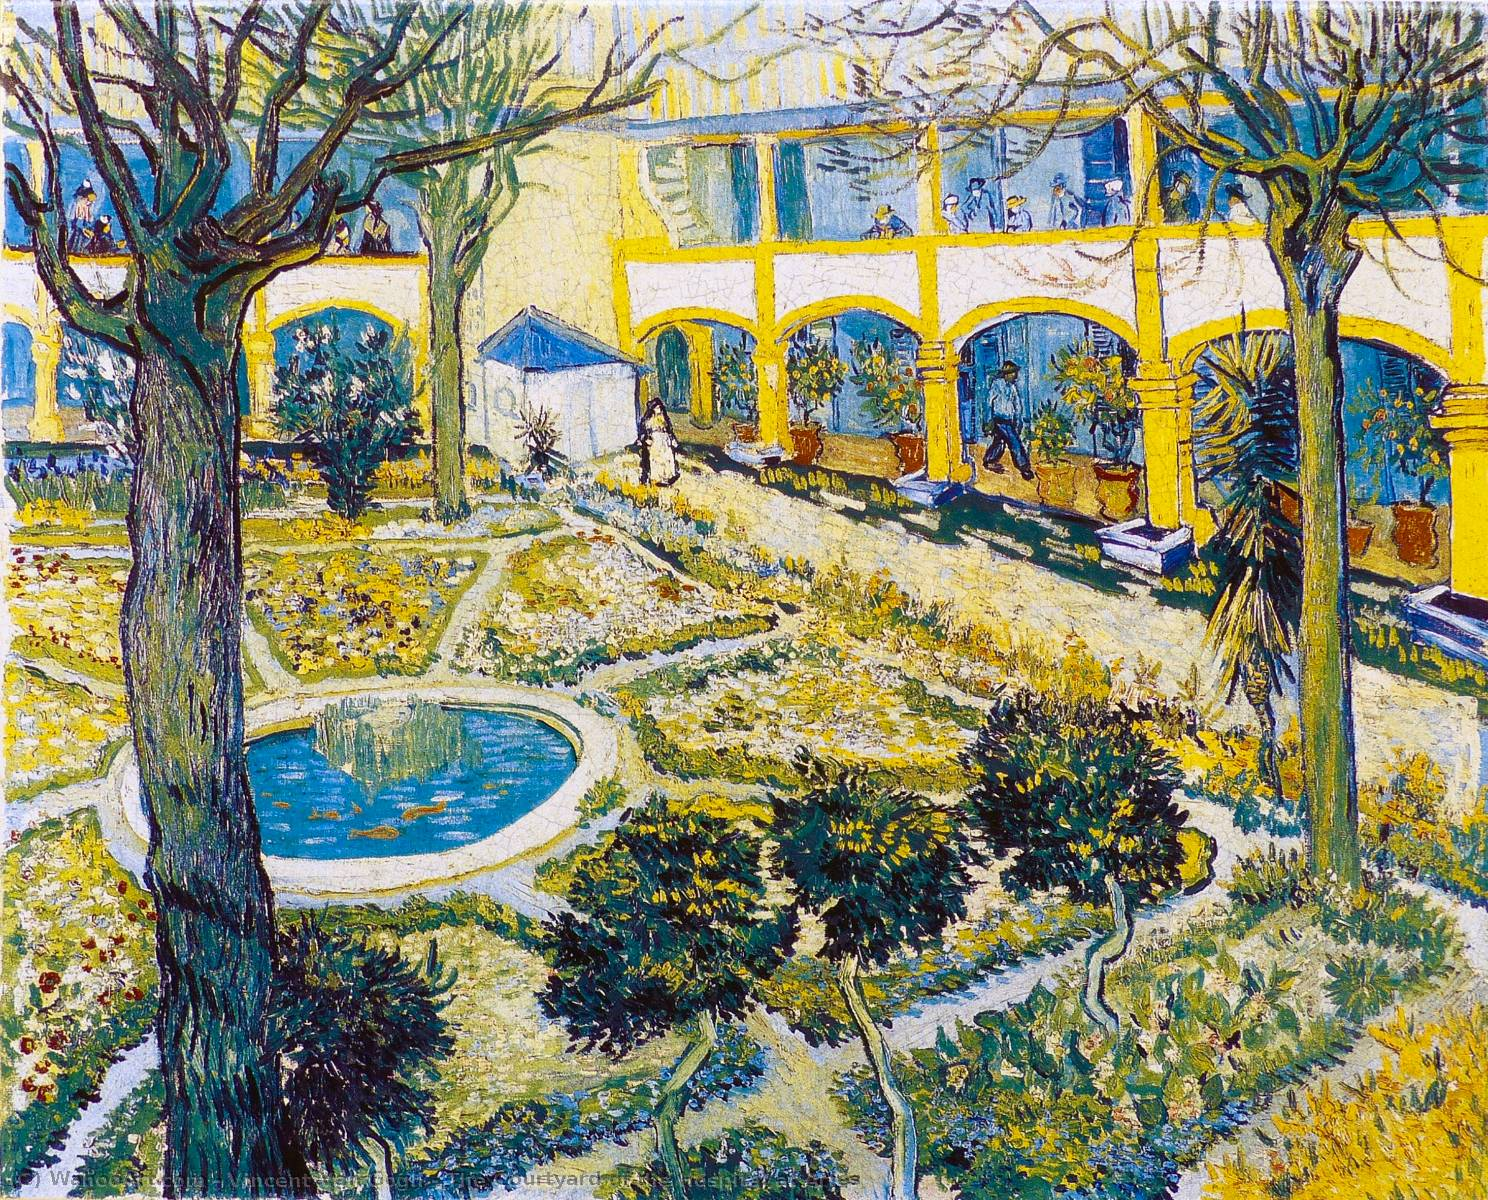 The Courtyard of the Hospital at Arles, Oil On Canvas by Vincent Van Gogh (1853-1890, Netherlands)